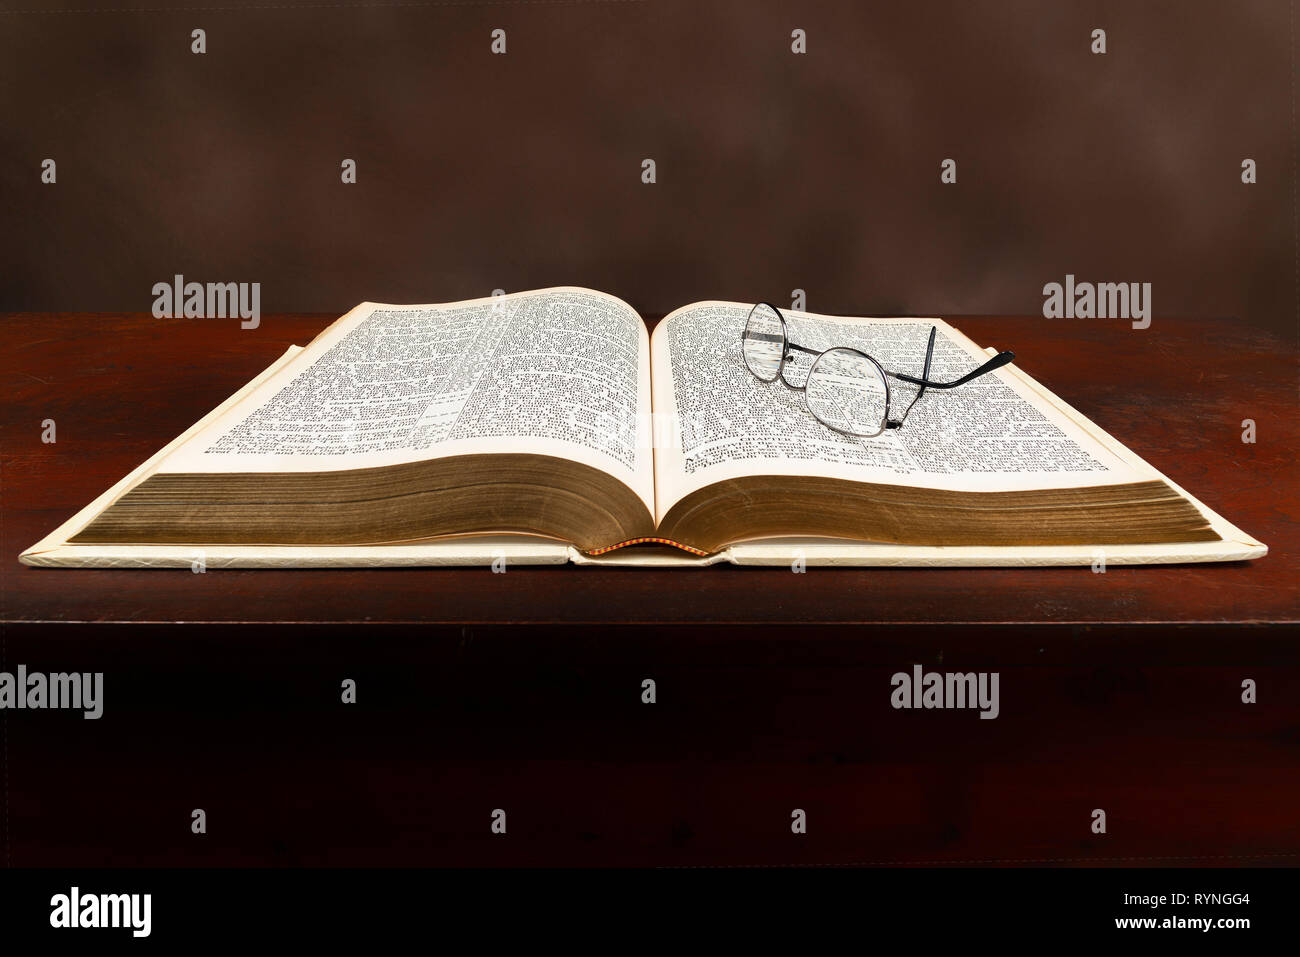 Horizontal close-up shot of an old Bible lying open on a brown background. - Stock Image